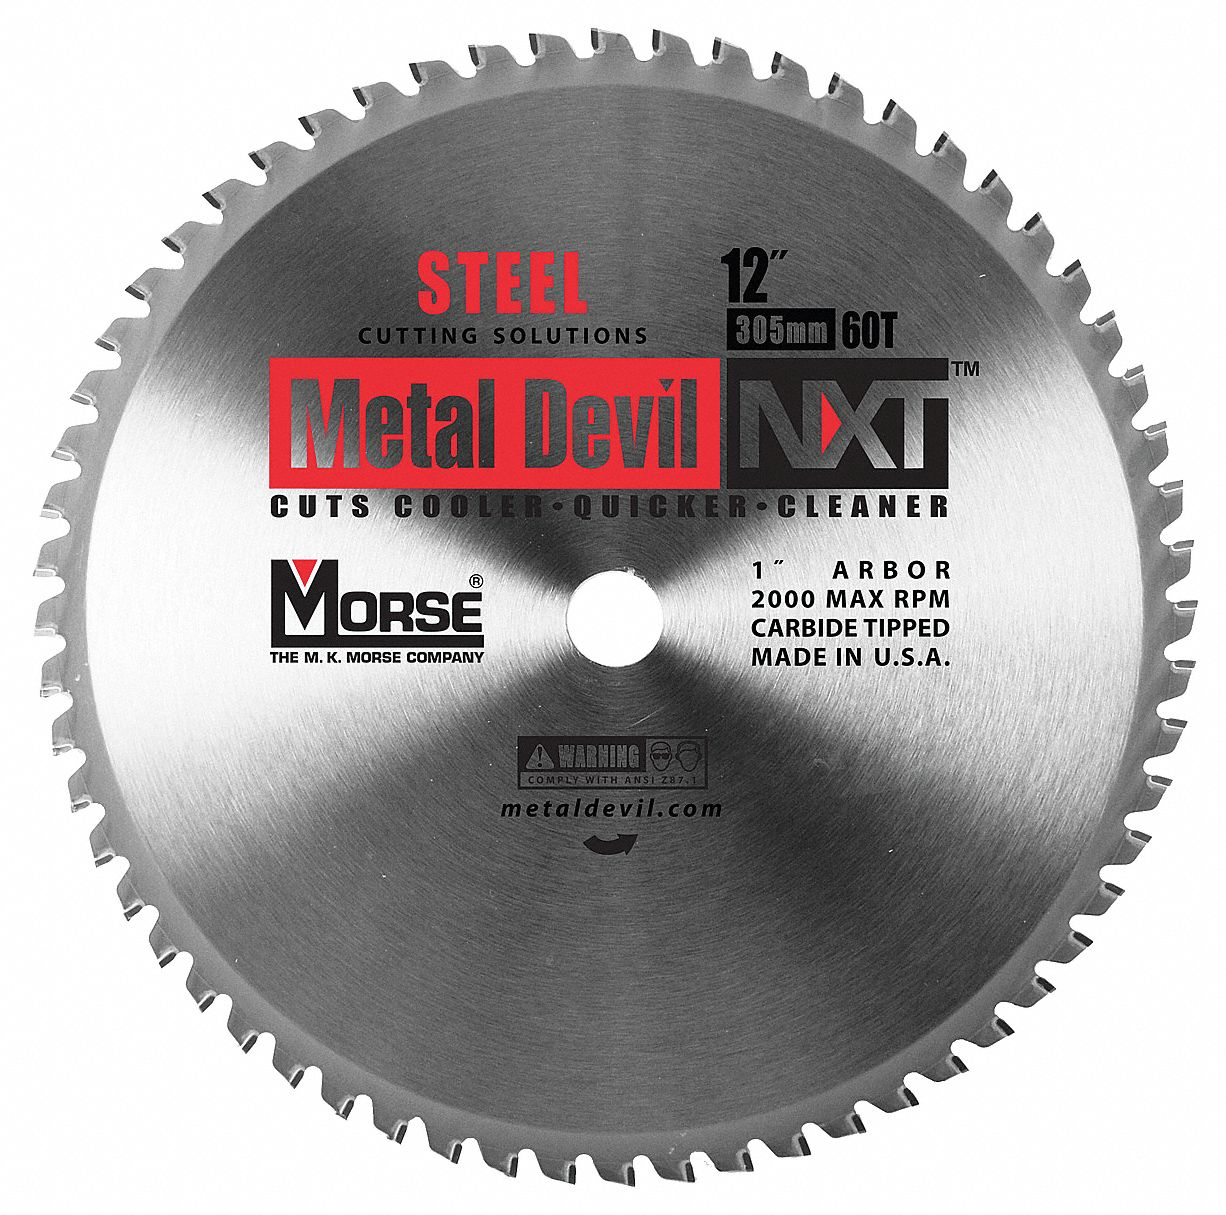 Morse circular saw bldcrbde12 in60 teeth 14h447csm1260nsc morse circular saw bldcrbde12 in60 teeth 14h447csm1260nsc grainger greentooth Image collections